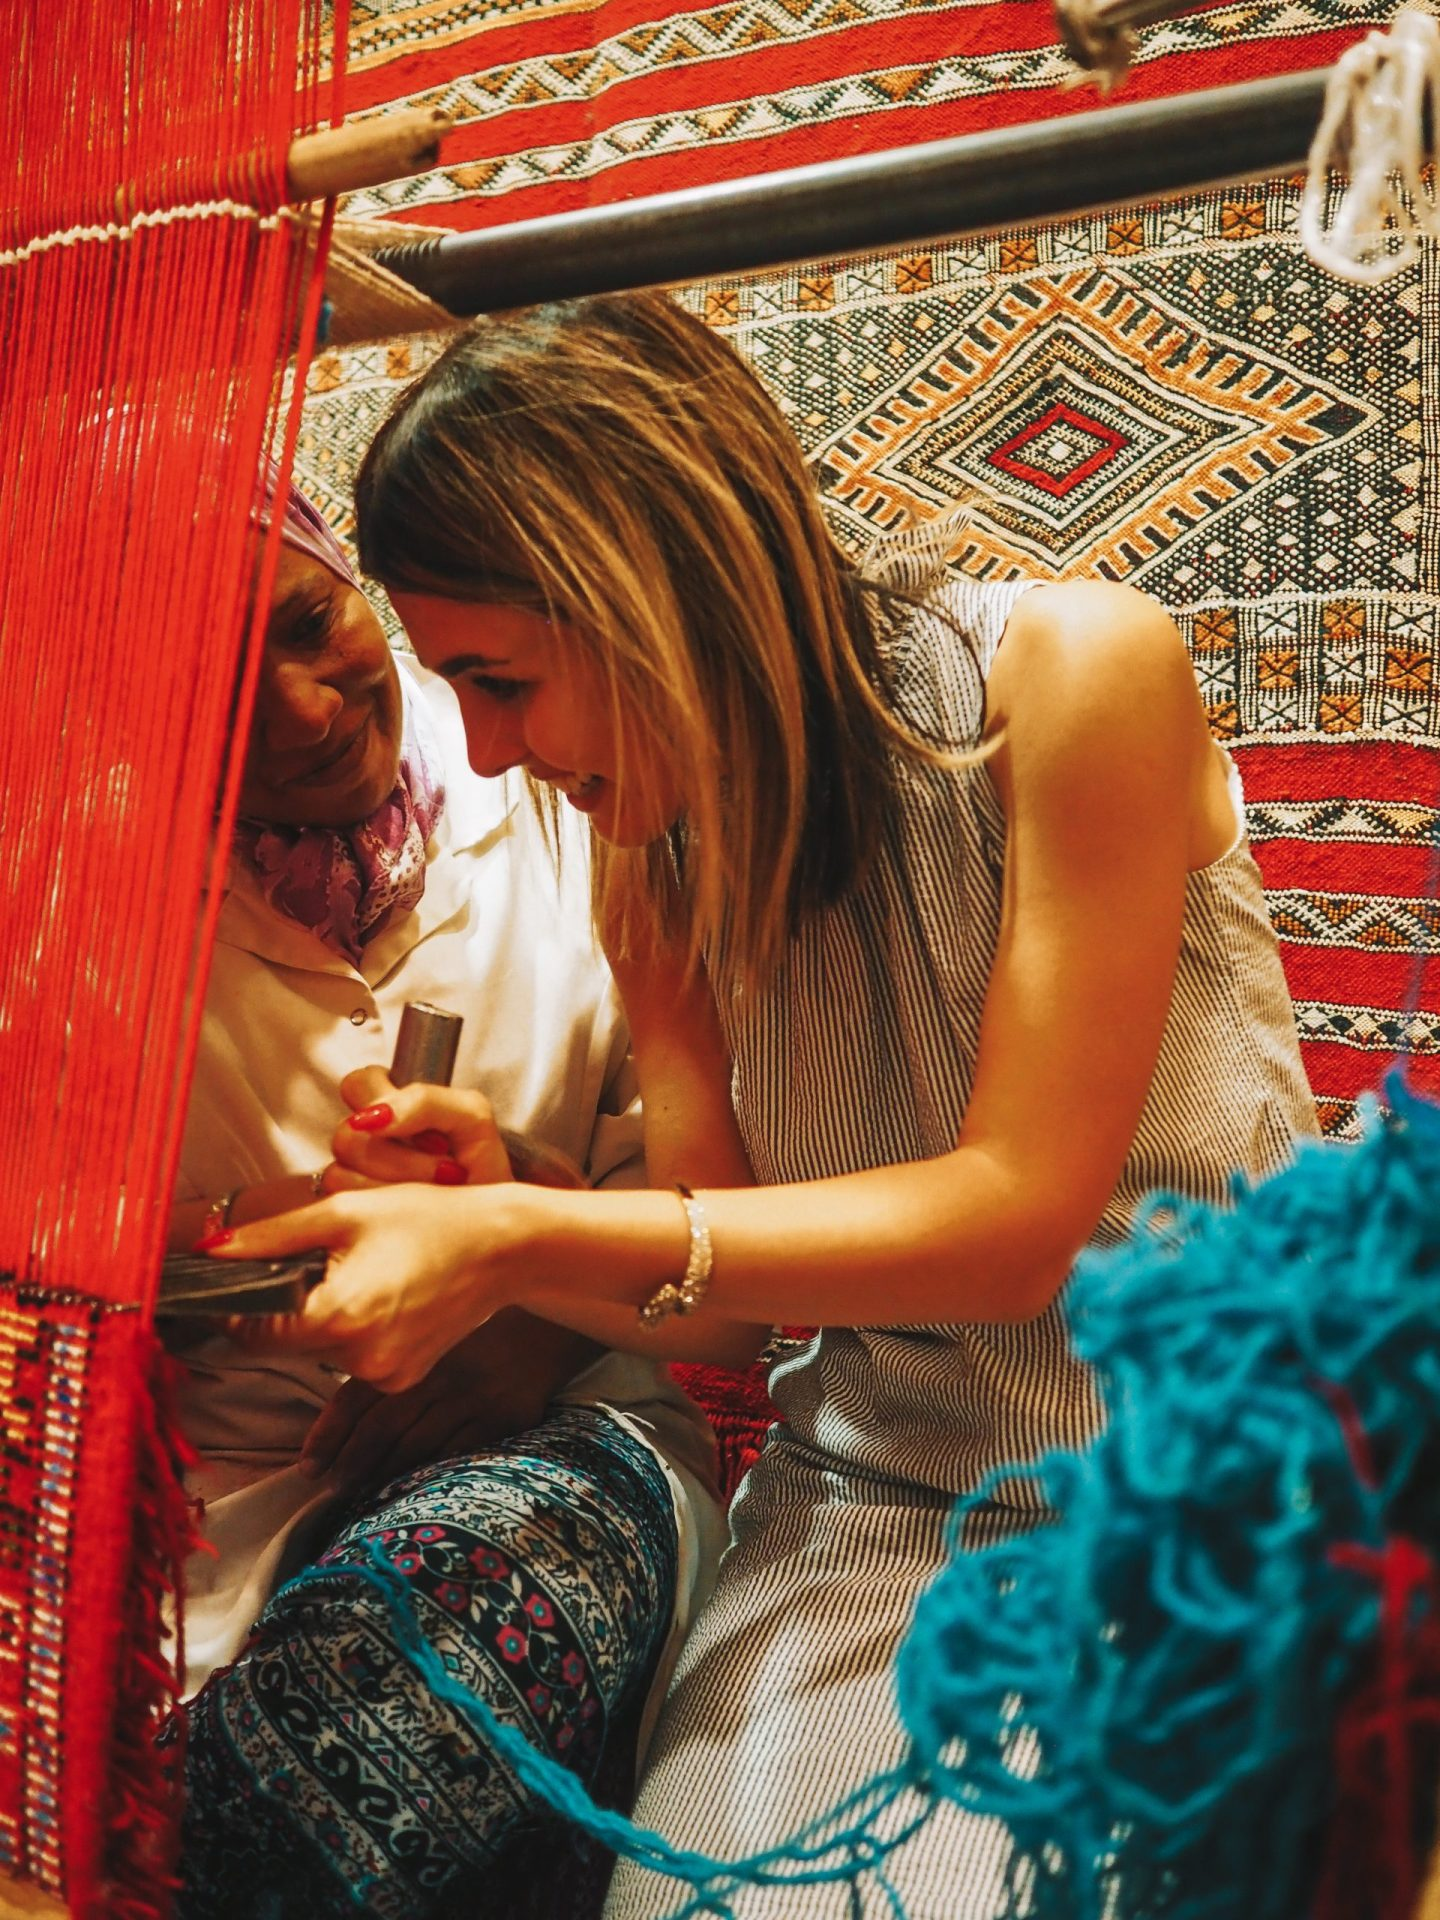 Making a Moroccan carpet with local women